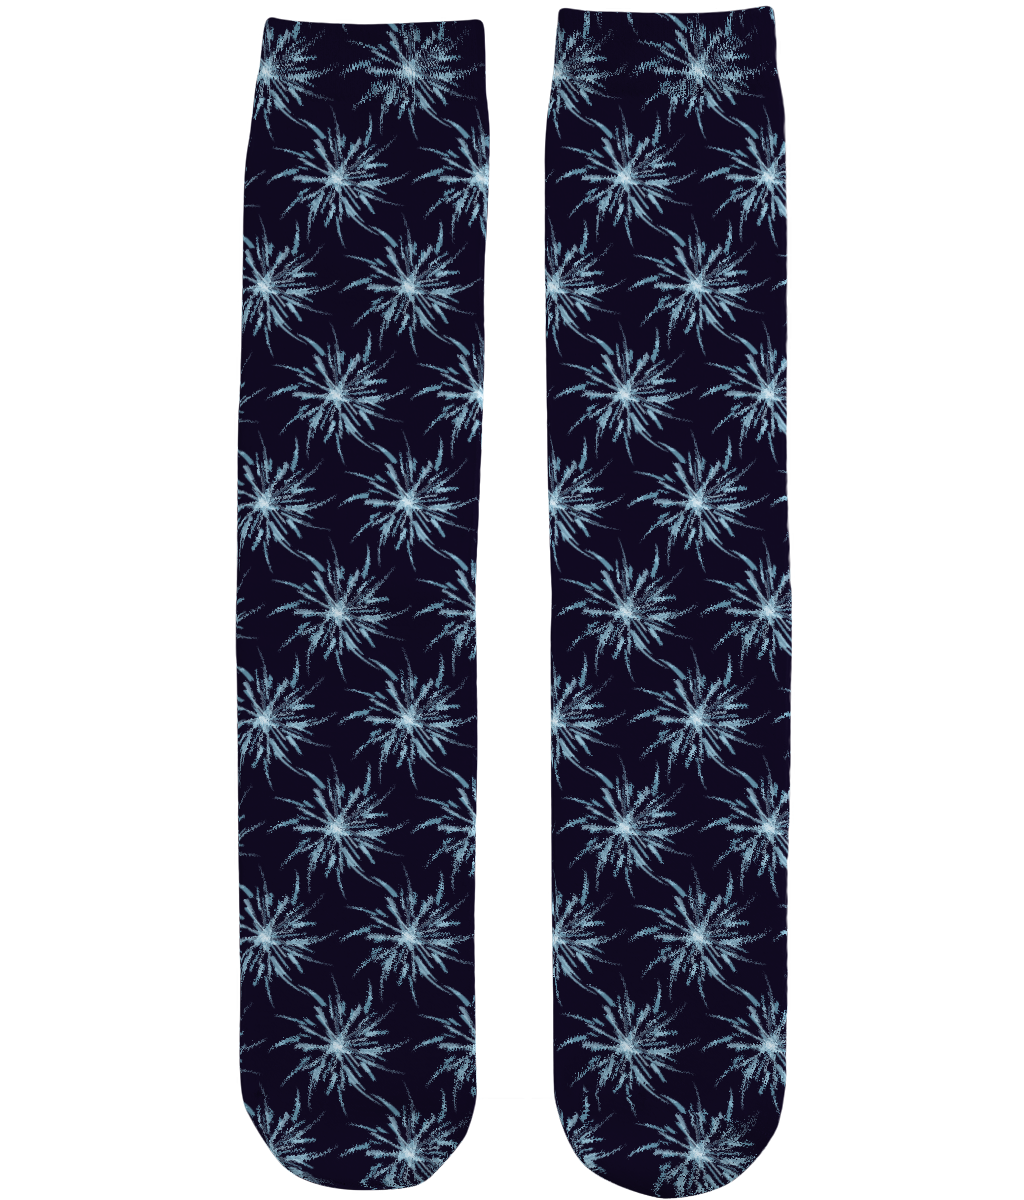 Christmas Snowflakes Pattern - Unisex Sublimation Tube Socks by Daniel Bevis